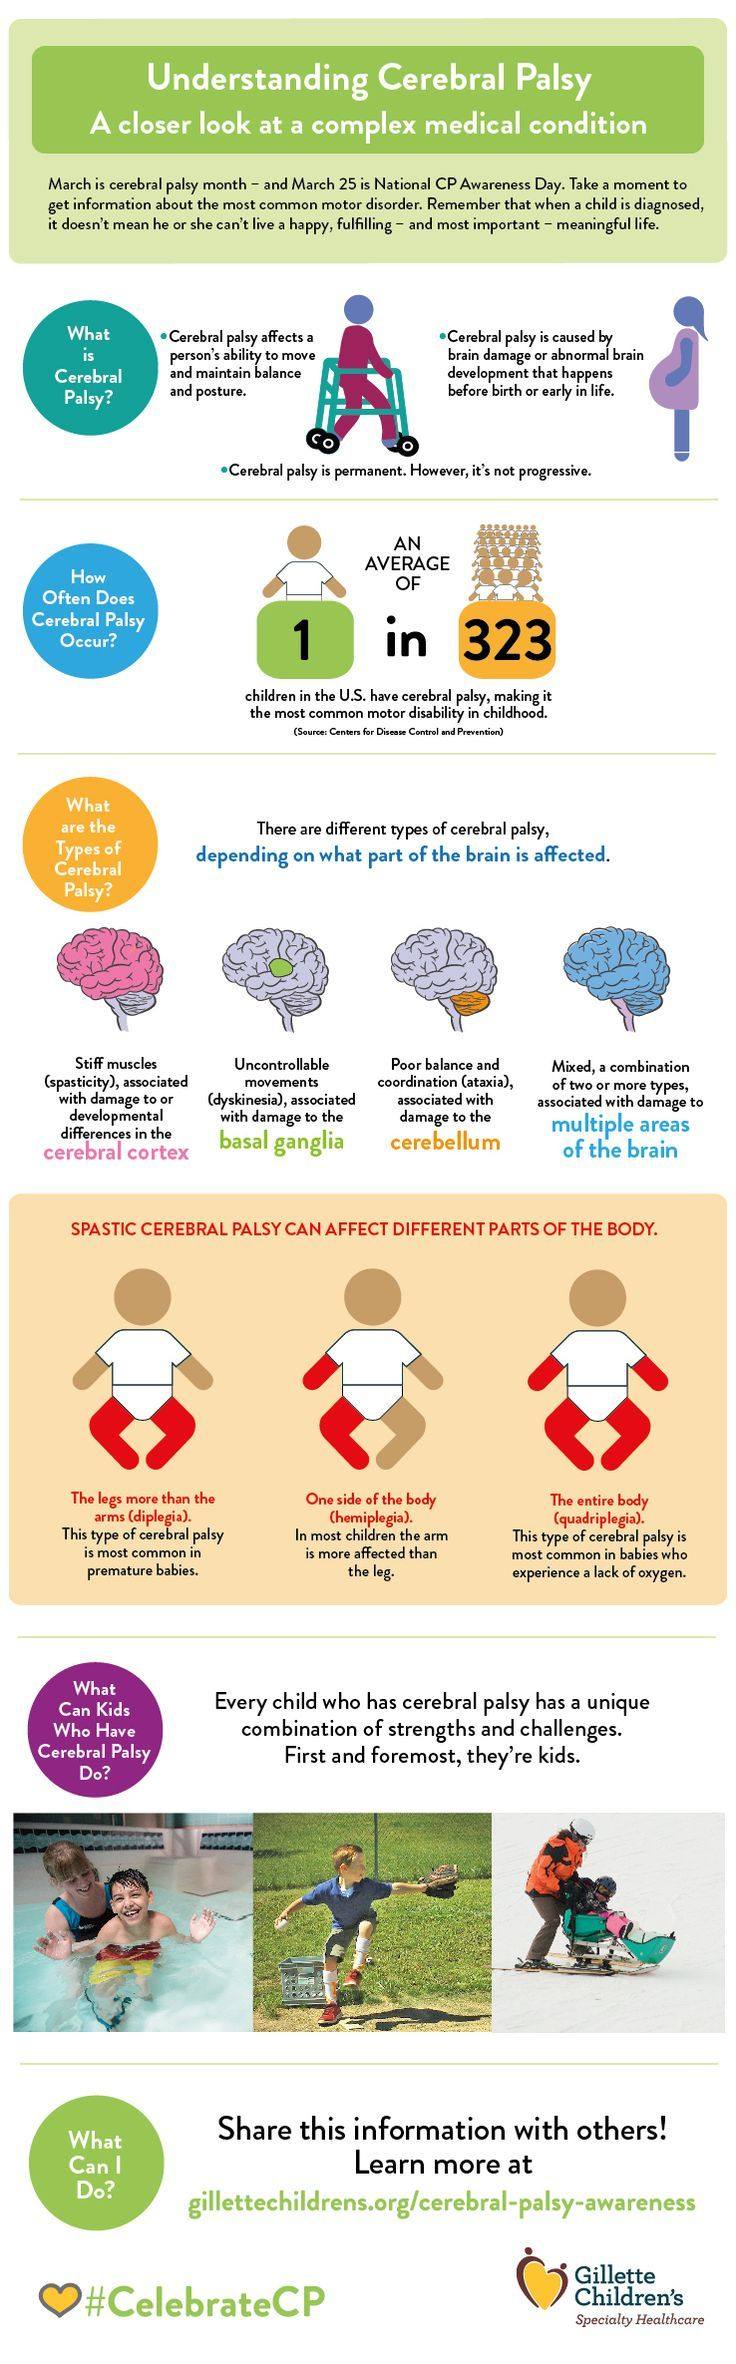 Understanding Cerebral Palsy Infographic by Gillette Childrens Specialty Healthcare. #CP